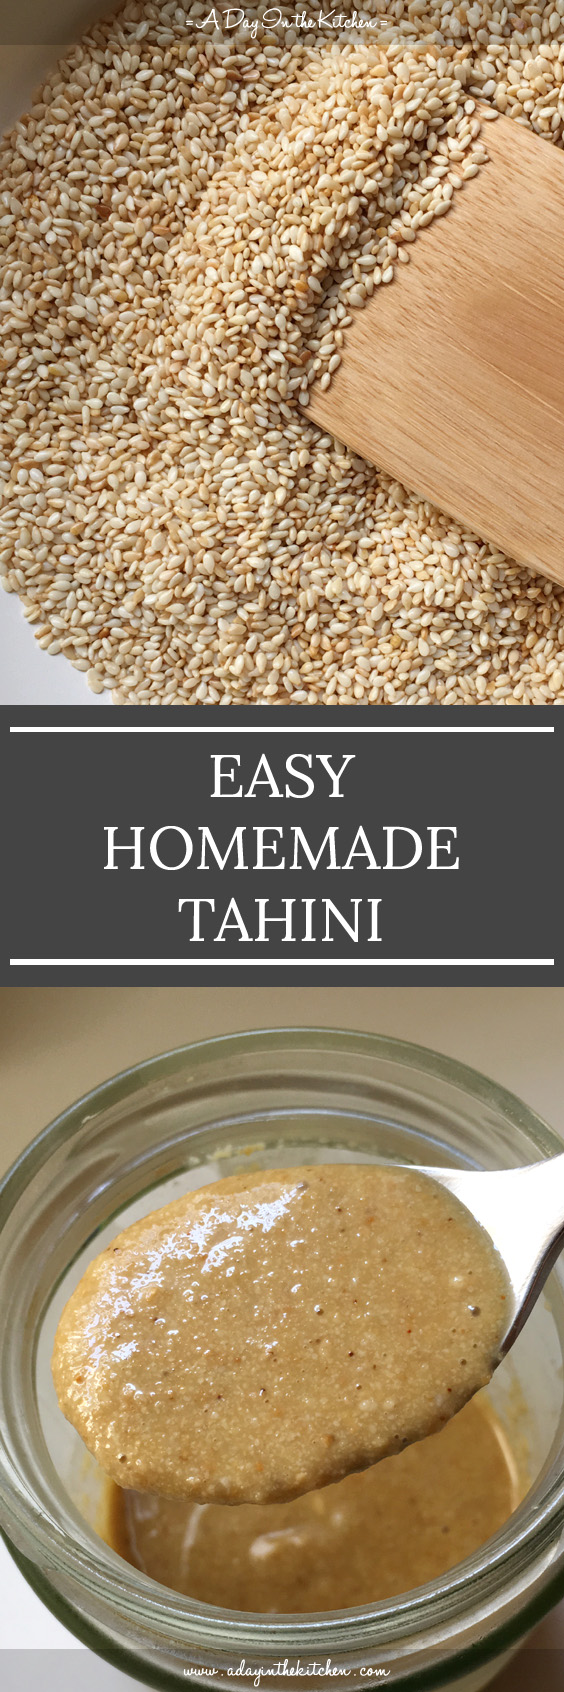 Don't waste your money buying expensive jars of tahini when you can make this easy homemade tahini in your own kitchen for cheaper! Only two ingredients needed and you're one step closer to making your own hummus! #tahini #sesame #hummus #tahinipaste #sesameseeds